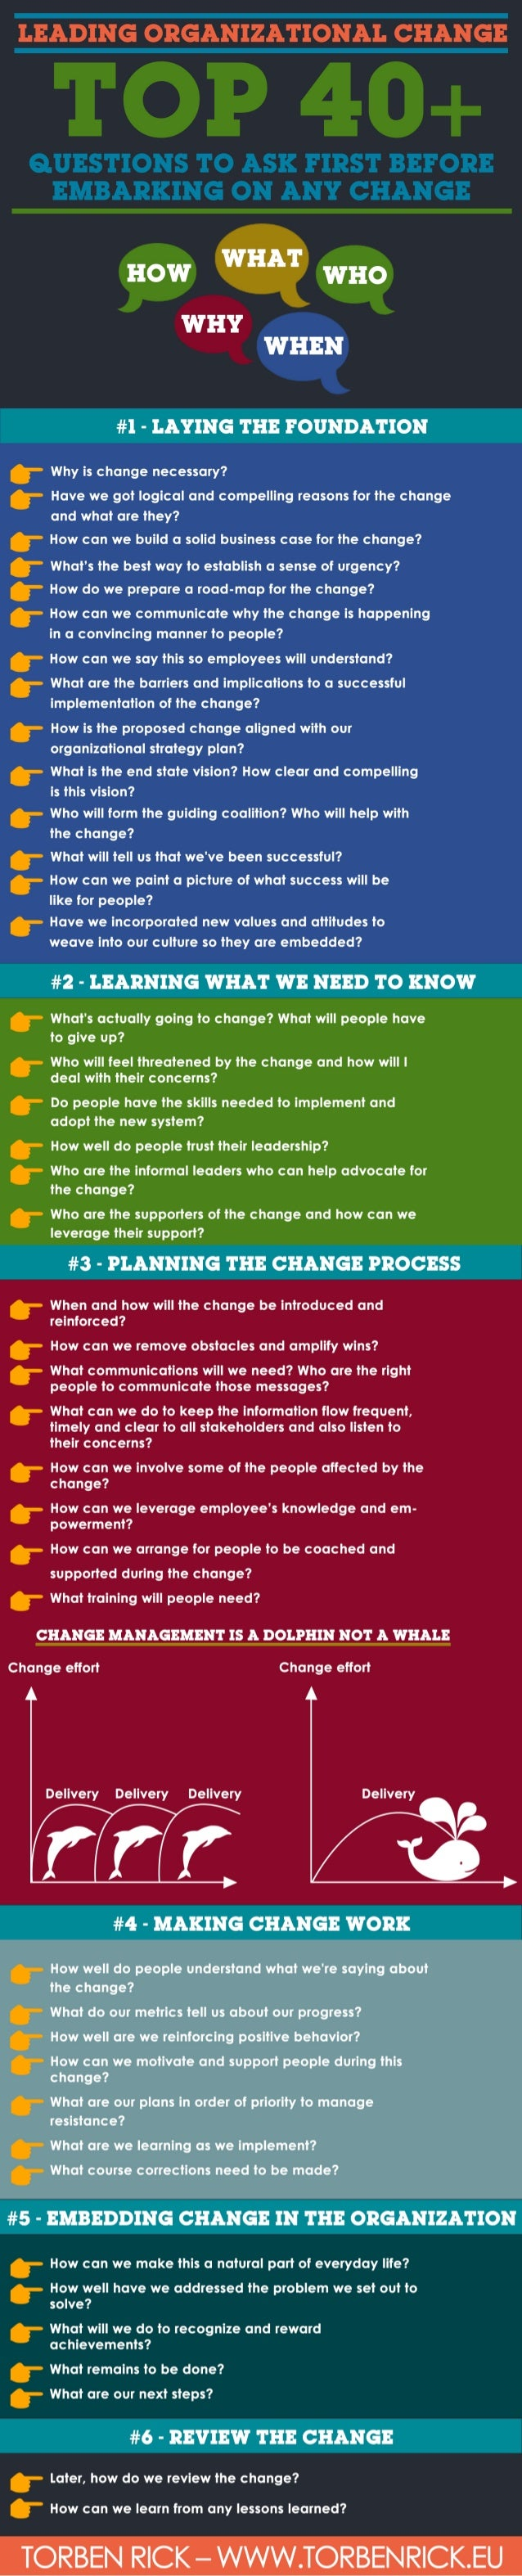 Top 40+ questions to ask before embarking on any change management